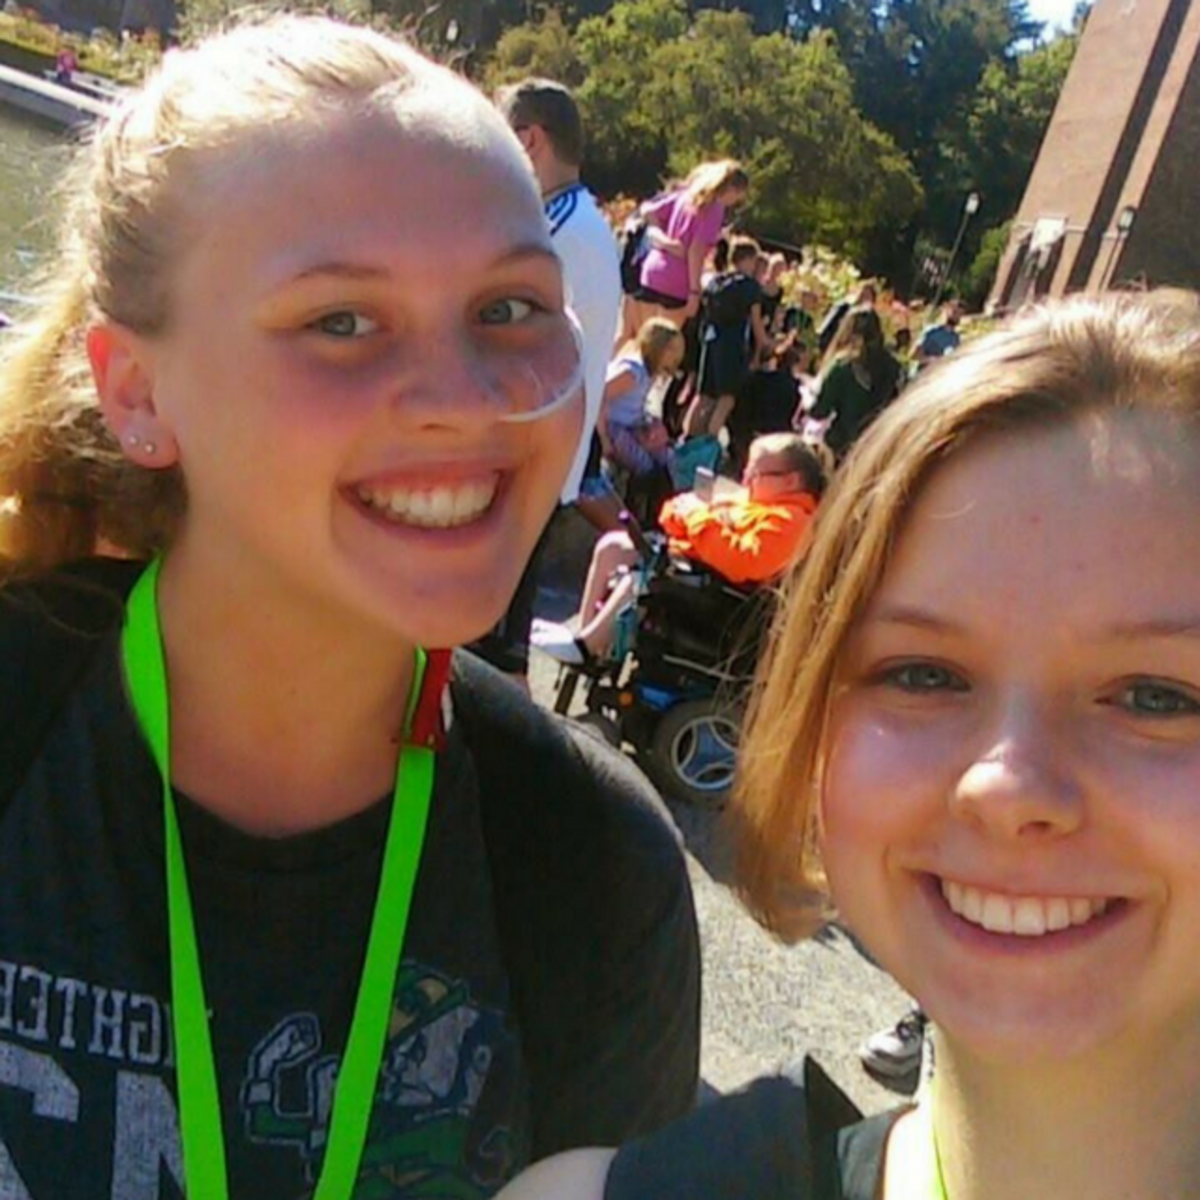 Katie (left) and I are at Youth Rally camp.